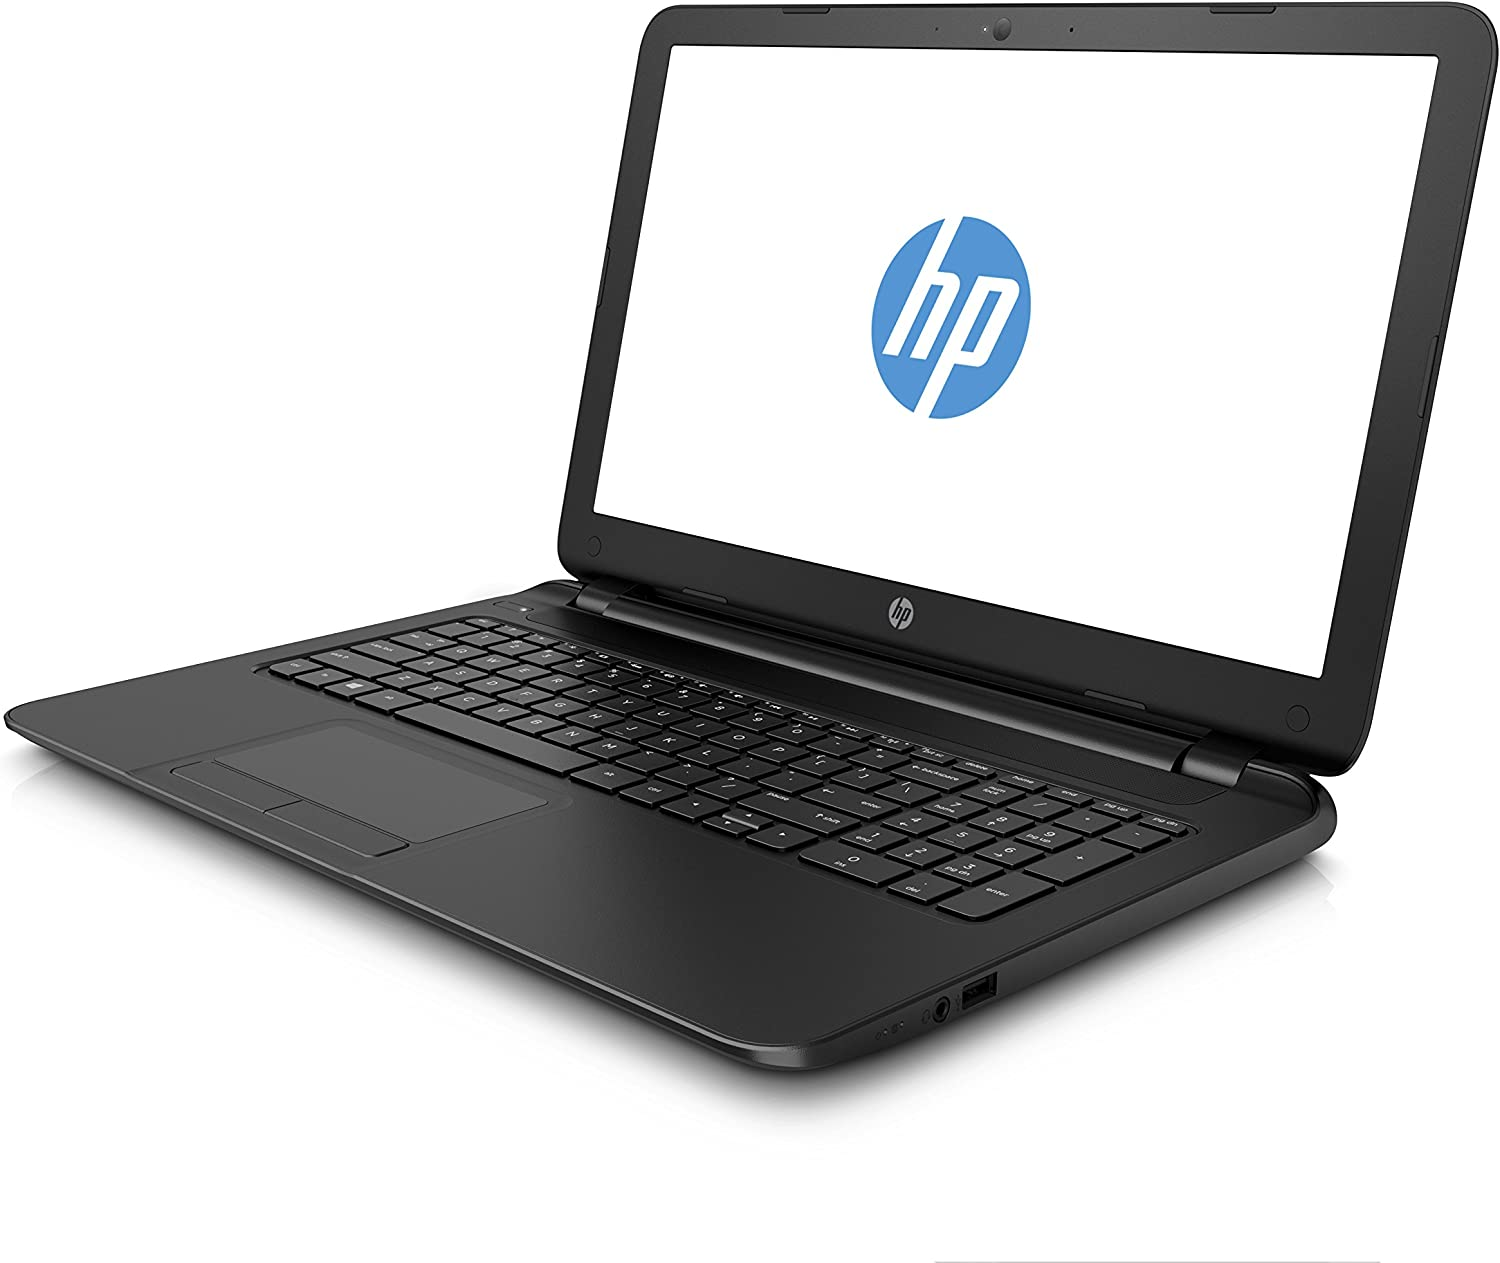 "HP 15-f004wm Laptop Computer - 15.6"" HD Brightview WLED Backlit Screen, Intel Celeron N2830 Processor 2.16GHz, 4GB DDR3 RAM, 500GB HDD, Super DVD Burner, Windows 8.1"